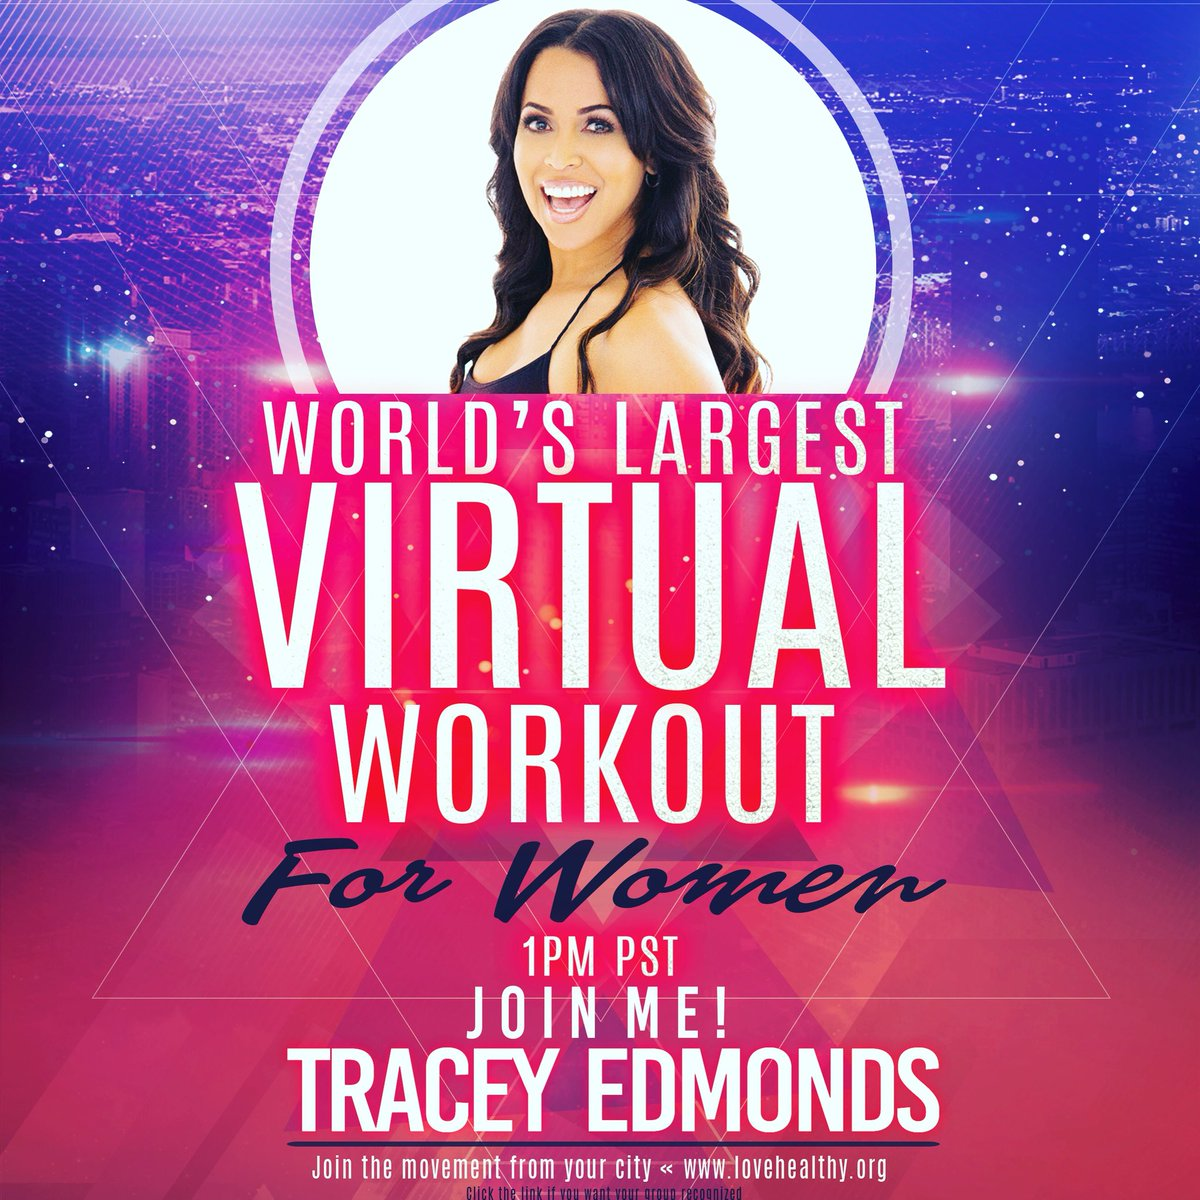 """Having a blast """"workin it"""" at The World's Largest Virtual Workout"""" today!  Shout out to @BET @robbi_reed @MsTinaLawson and EVERYONE here and everywhere who are sharing the experience with us!  About to go back onstage for some yoga!  #alrightnow #alrighters #528hz ✌🏽❤️"""